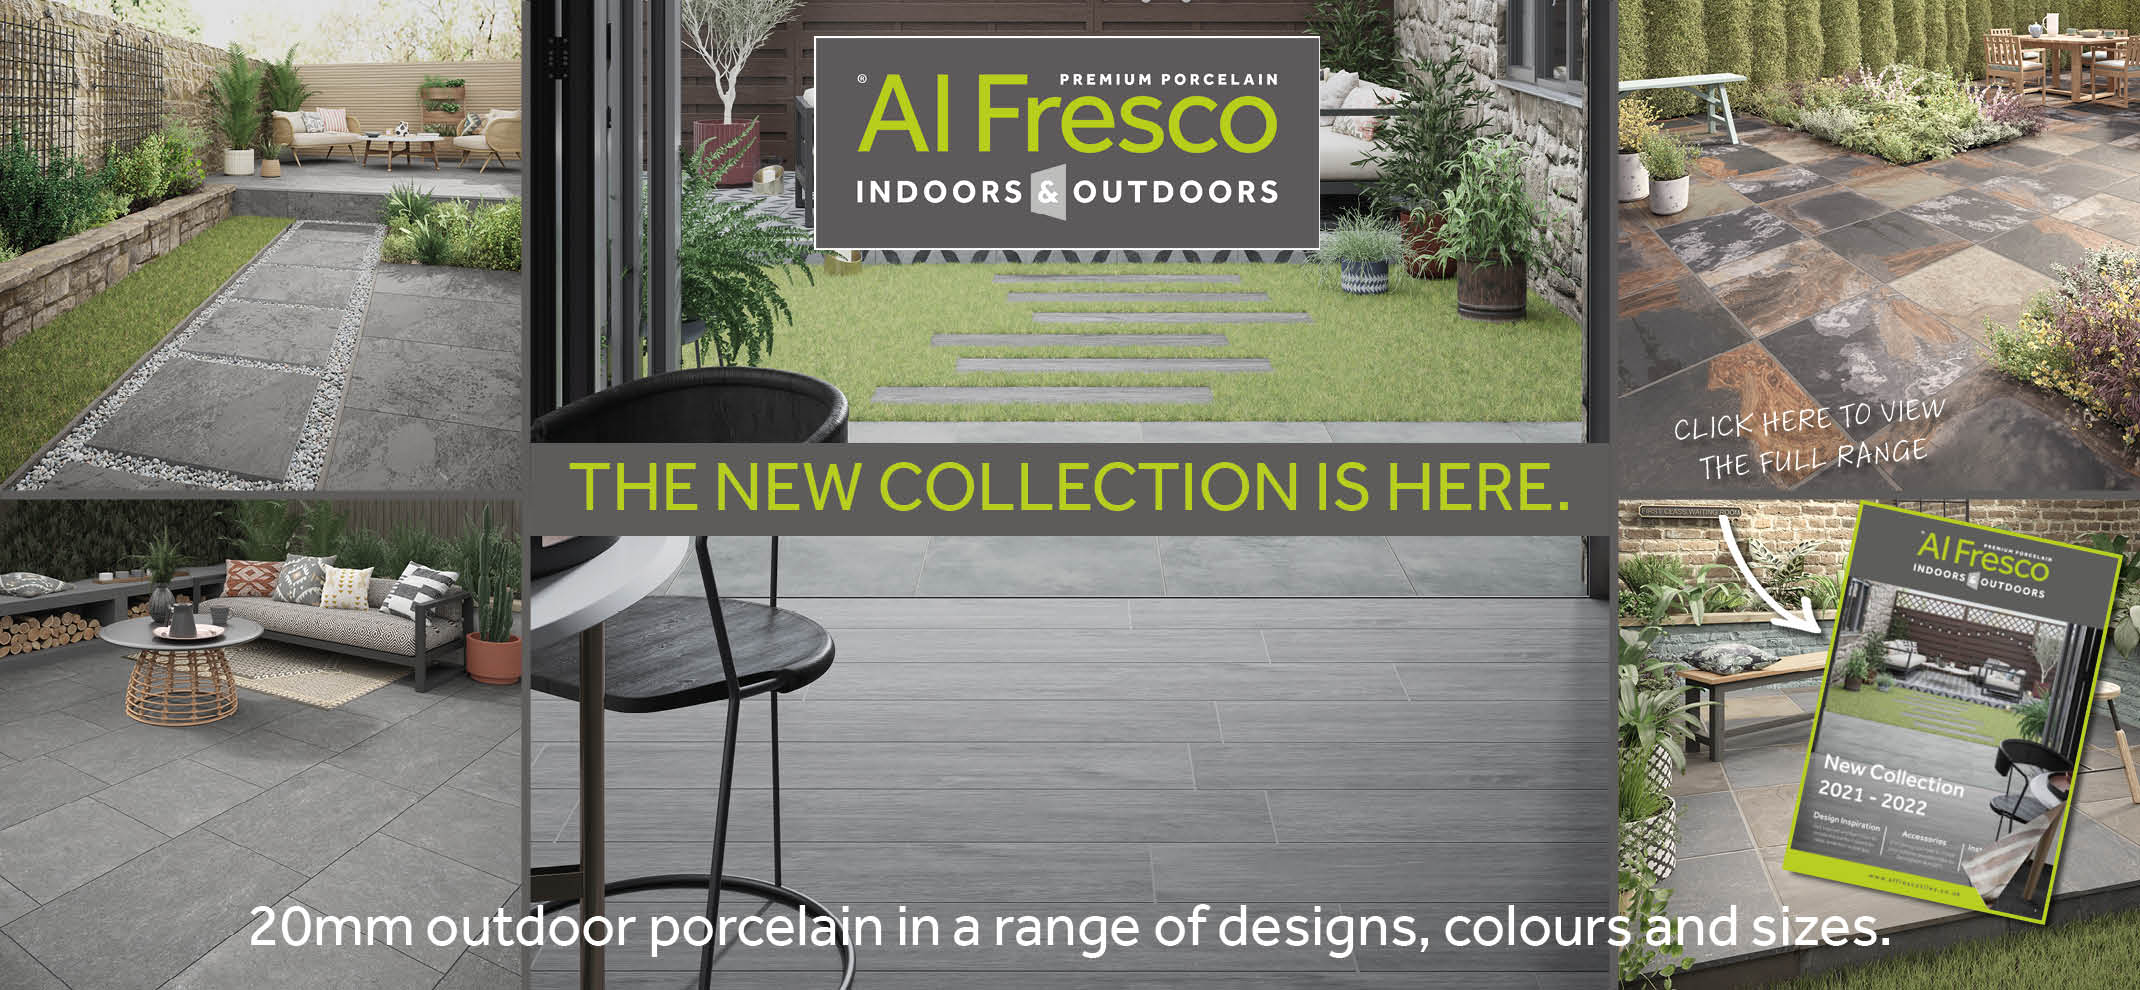 Al Fresco The New Collection is Here